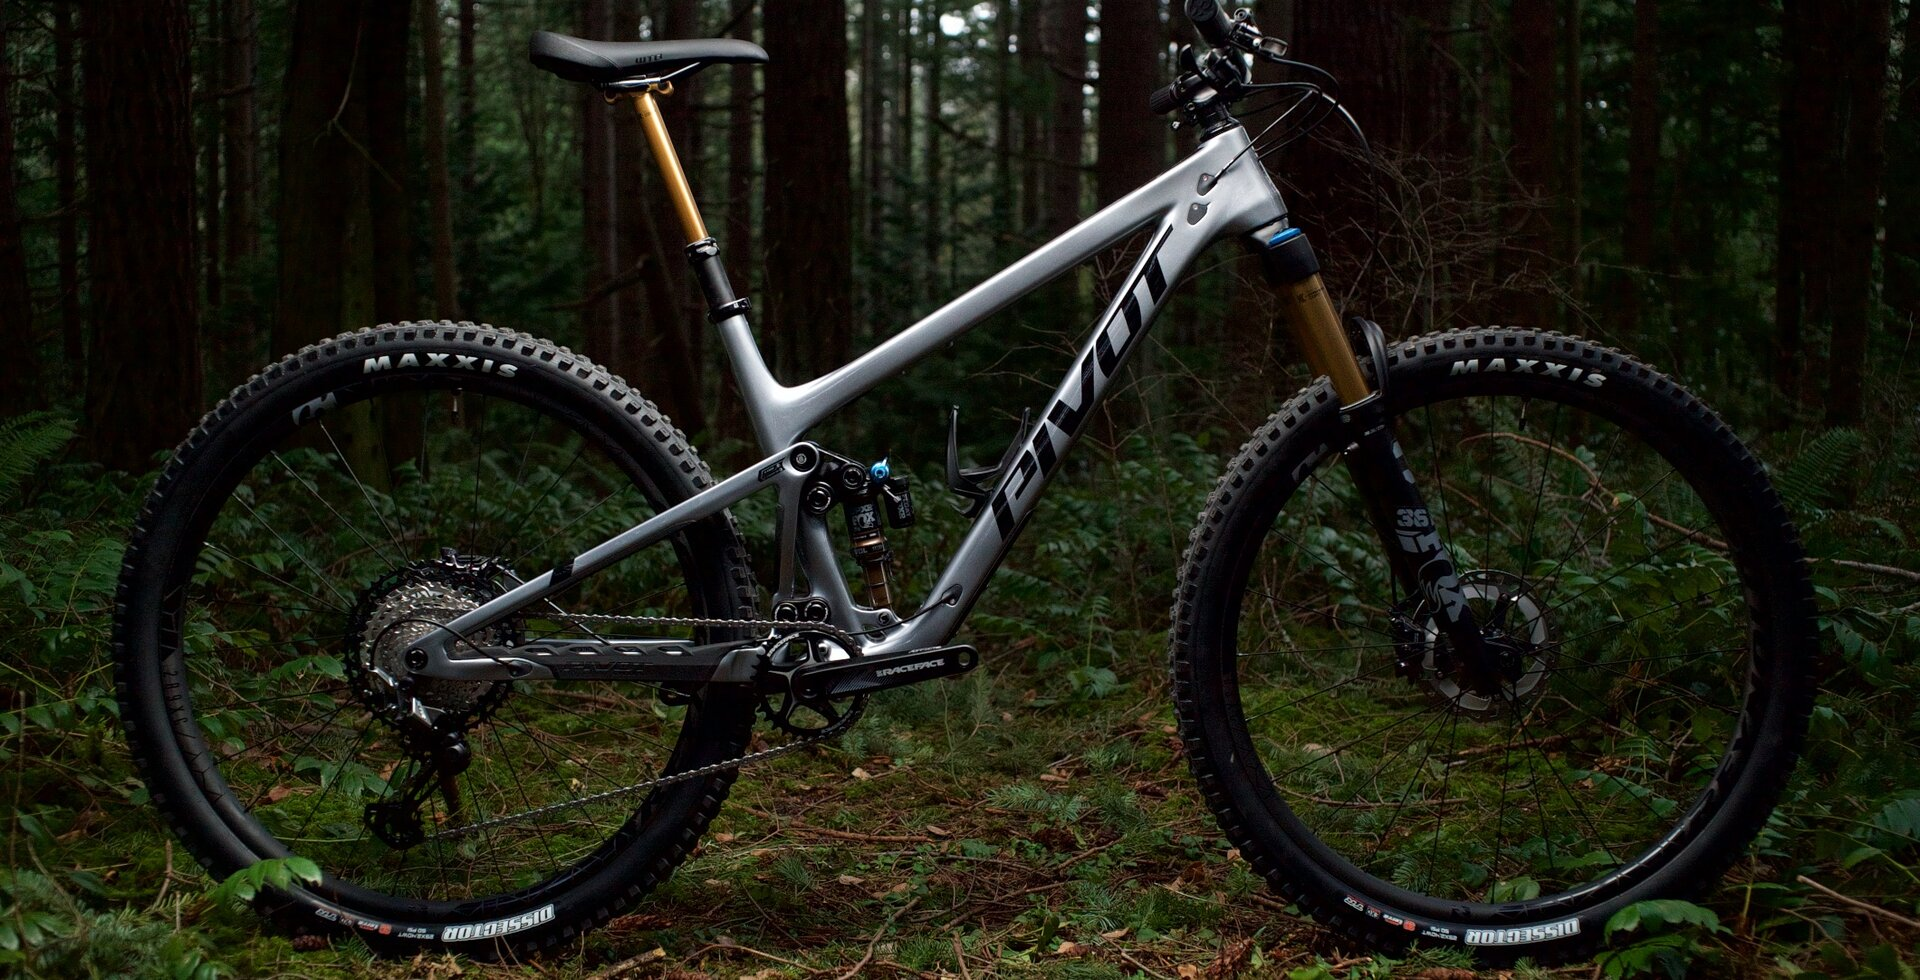 Progressive geometry and super capable suspension give hard charging riders the tools they need to thrive in jumpy and steep terrain.